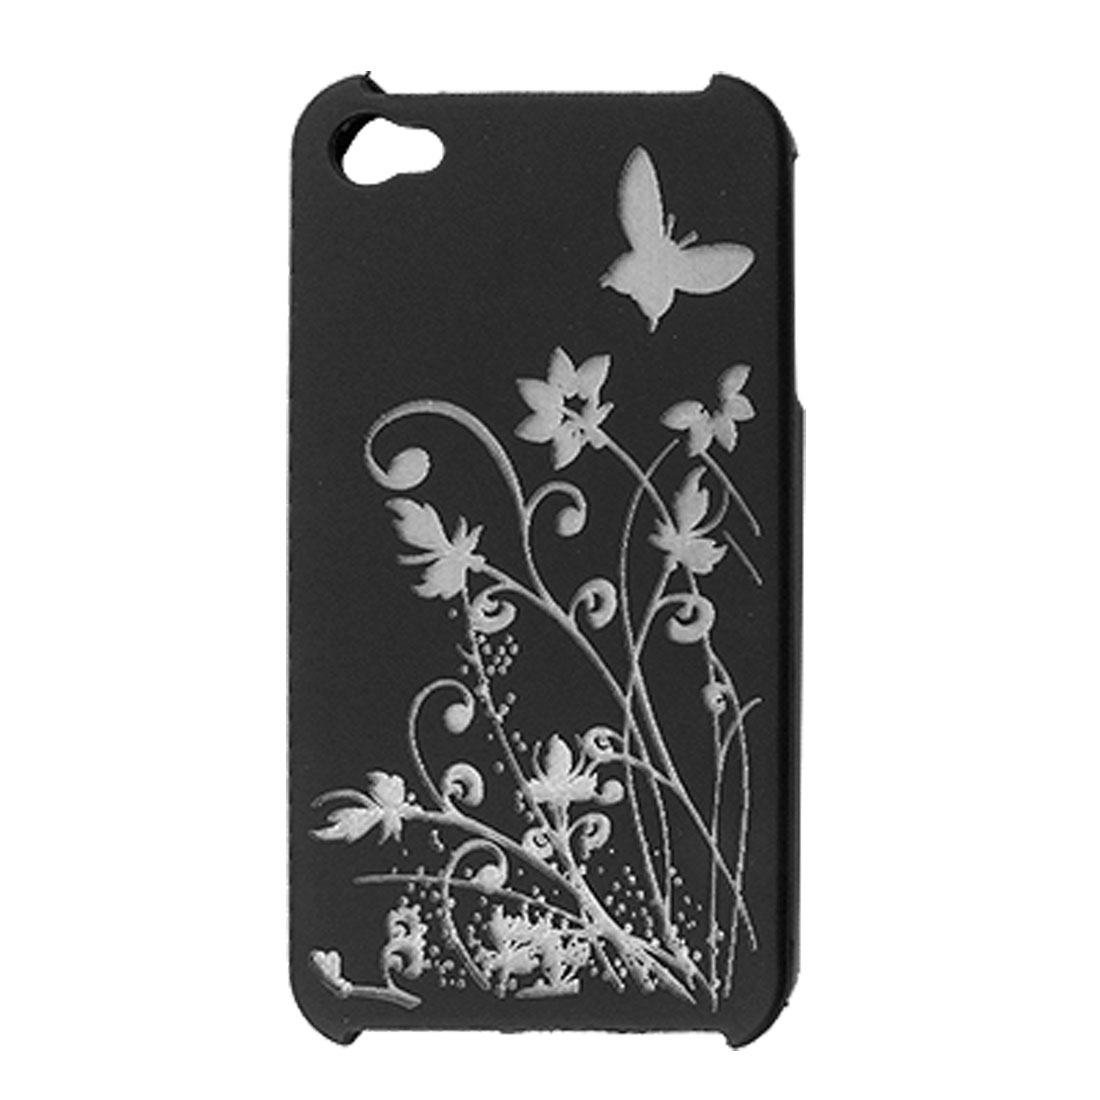 Black Rubberized Plastic Laser-cut Floral Cover for iPhone 4 4G